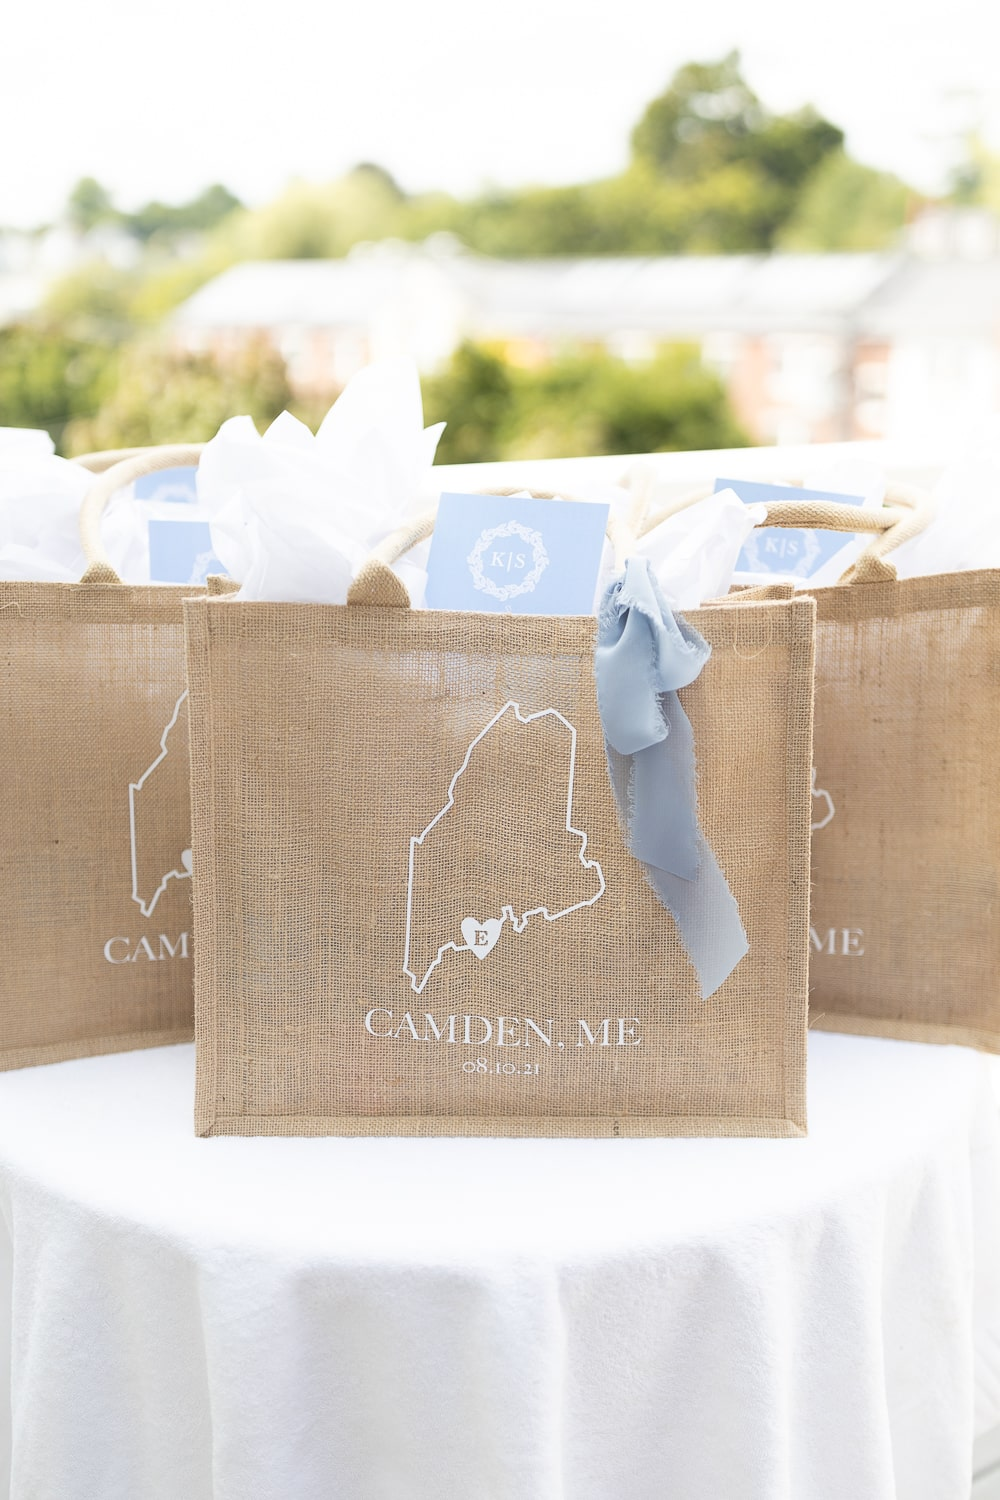 DIY burlap bags for wedding guests created by DIY blogger Stephanie Ziajka on Diary of a Debutante